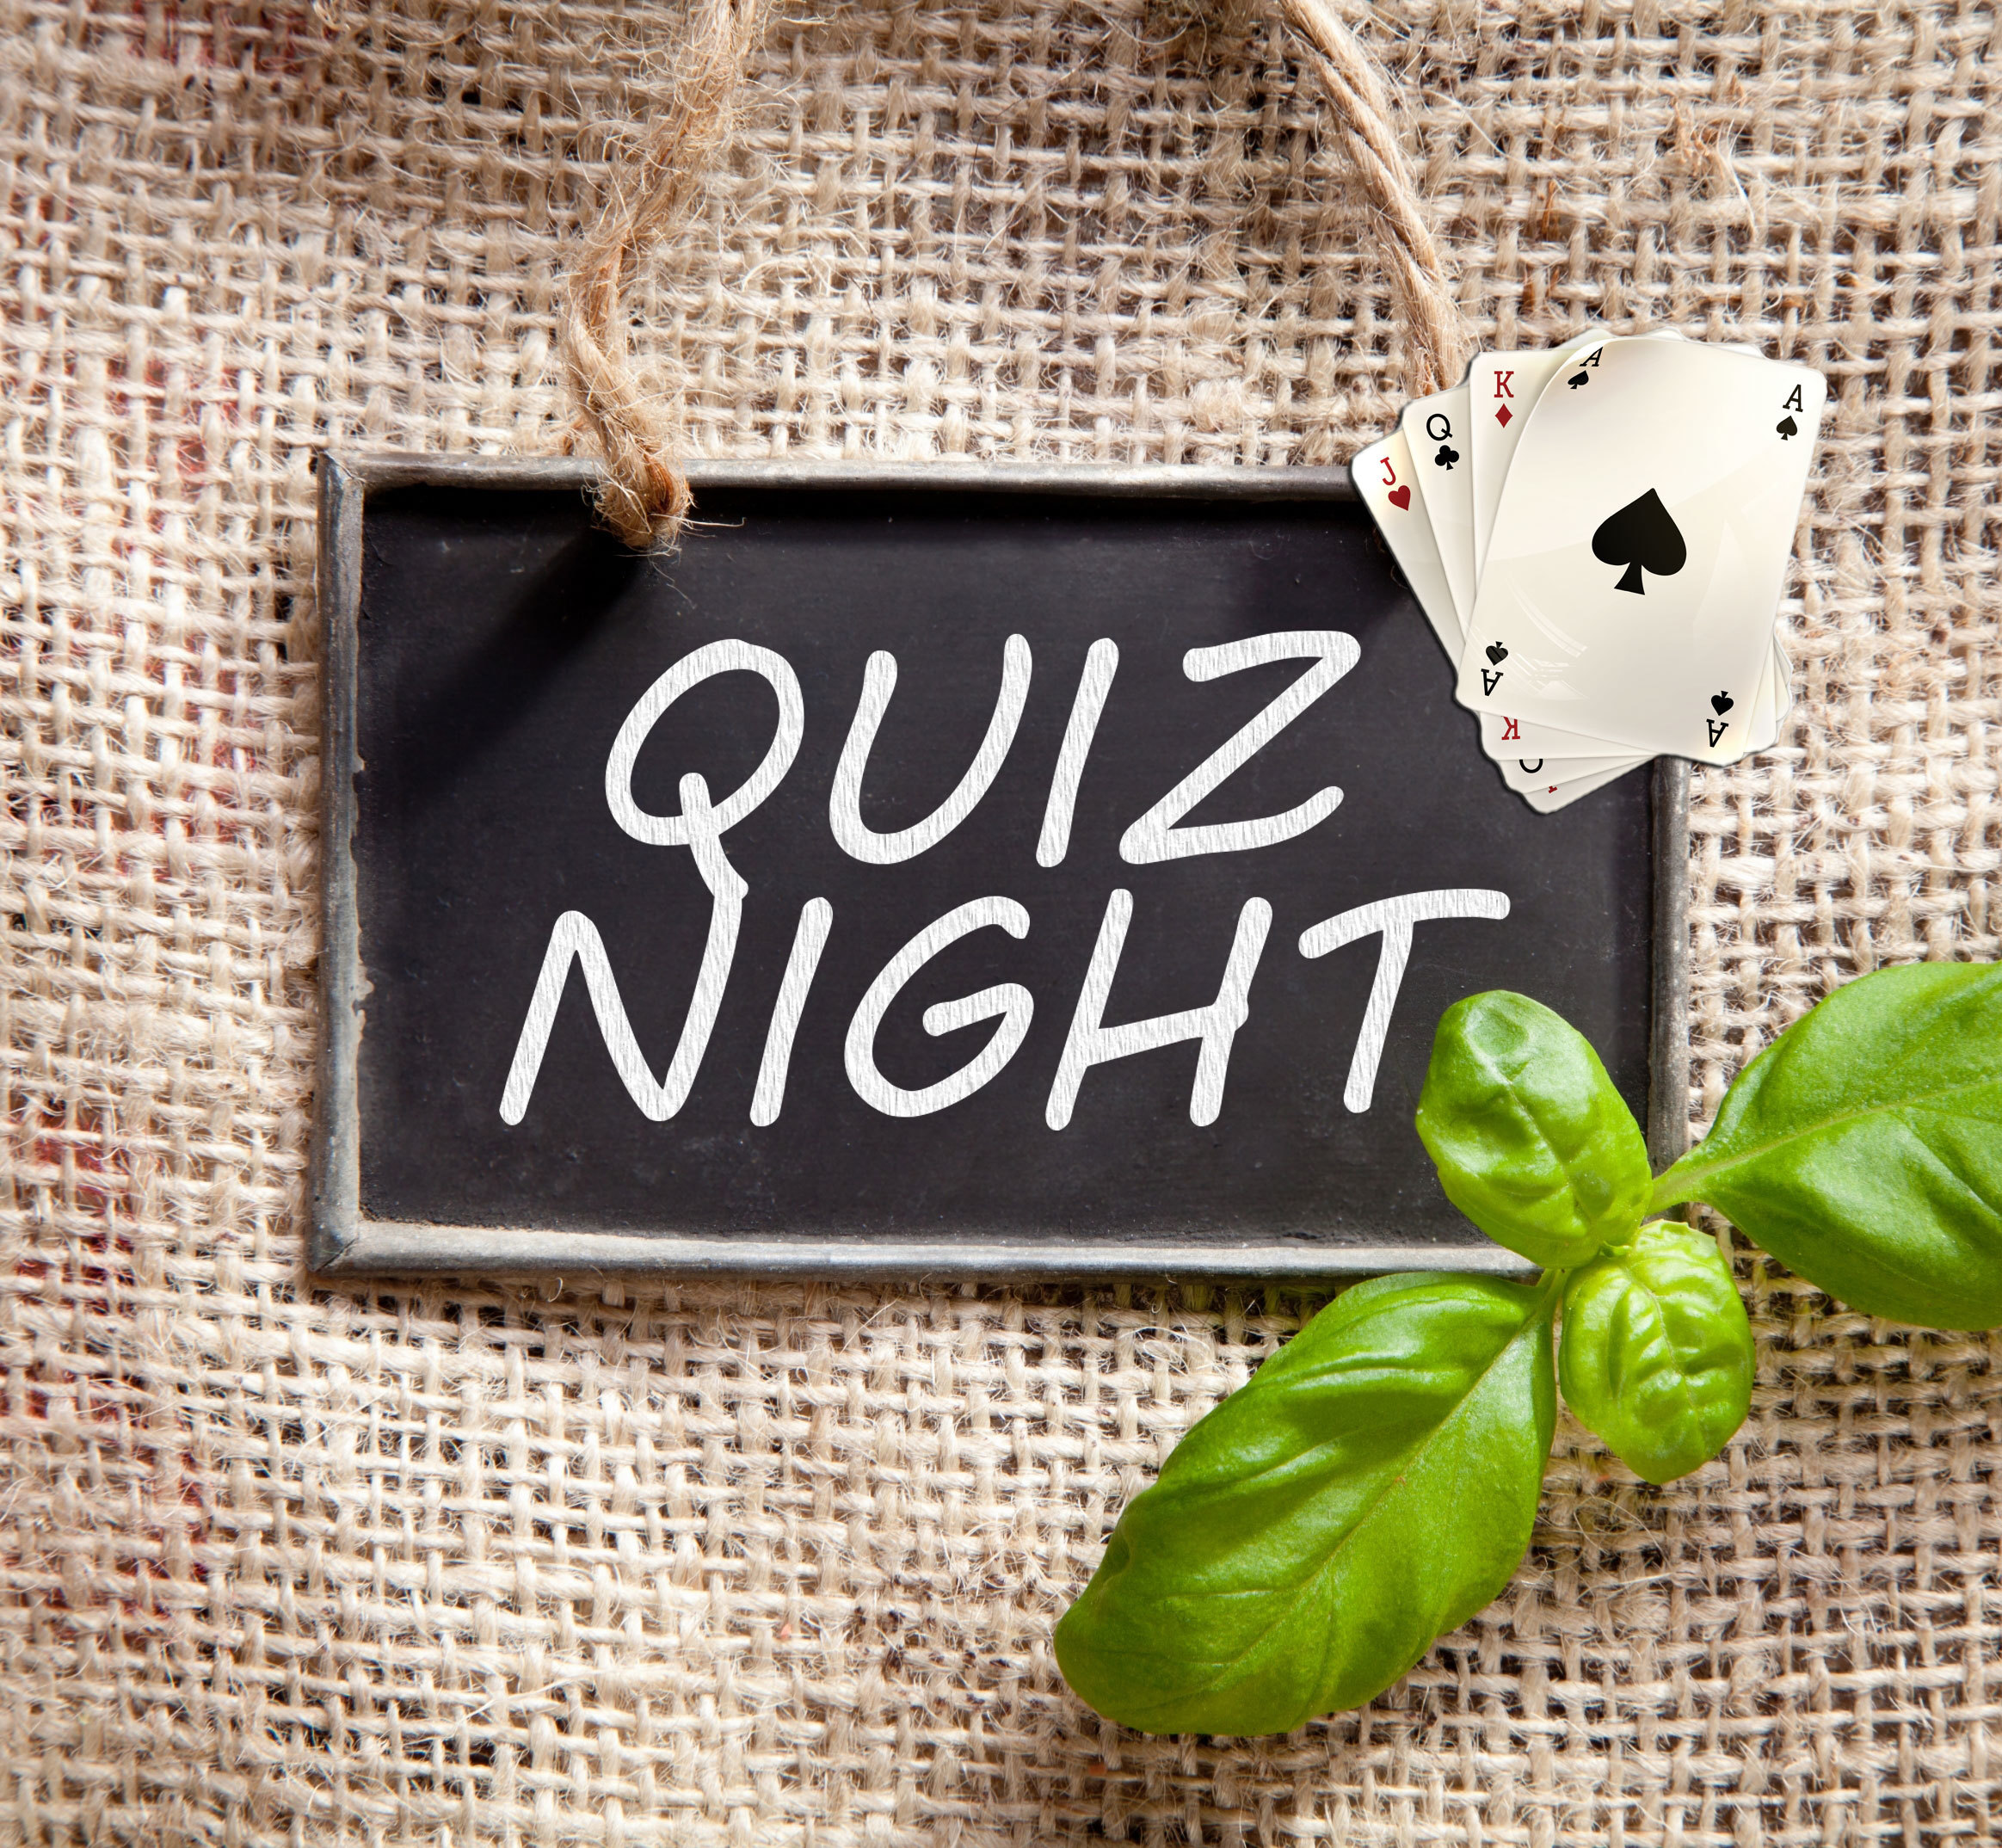 Monday Quiz Nights - Play Your Cards Right!